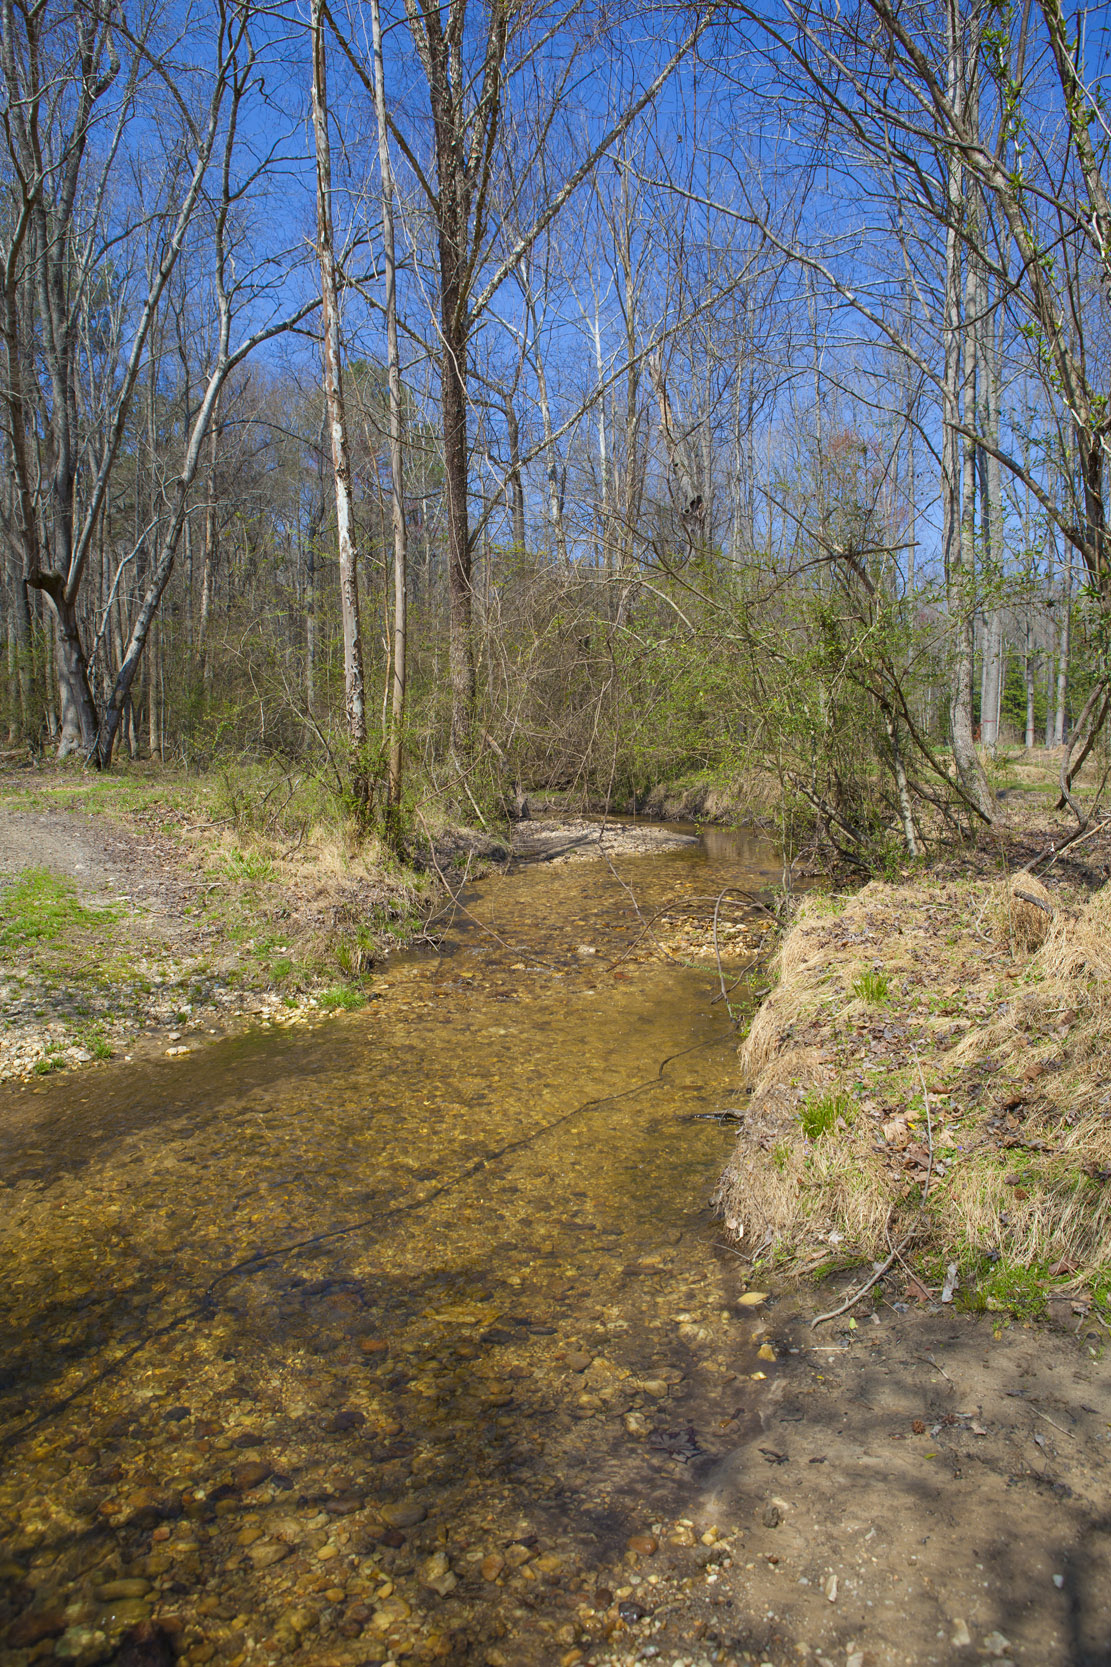 Blueline Streams in NC